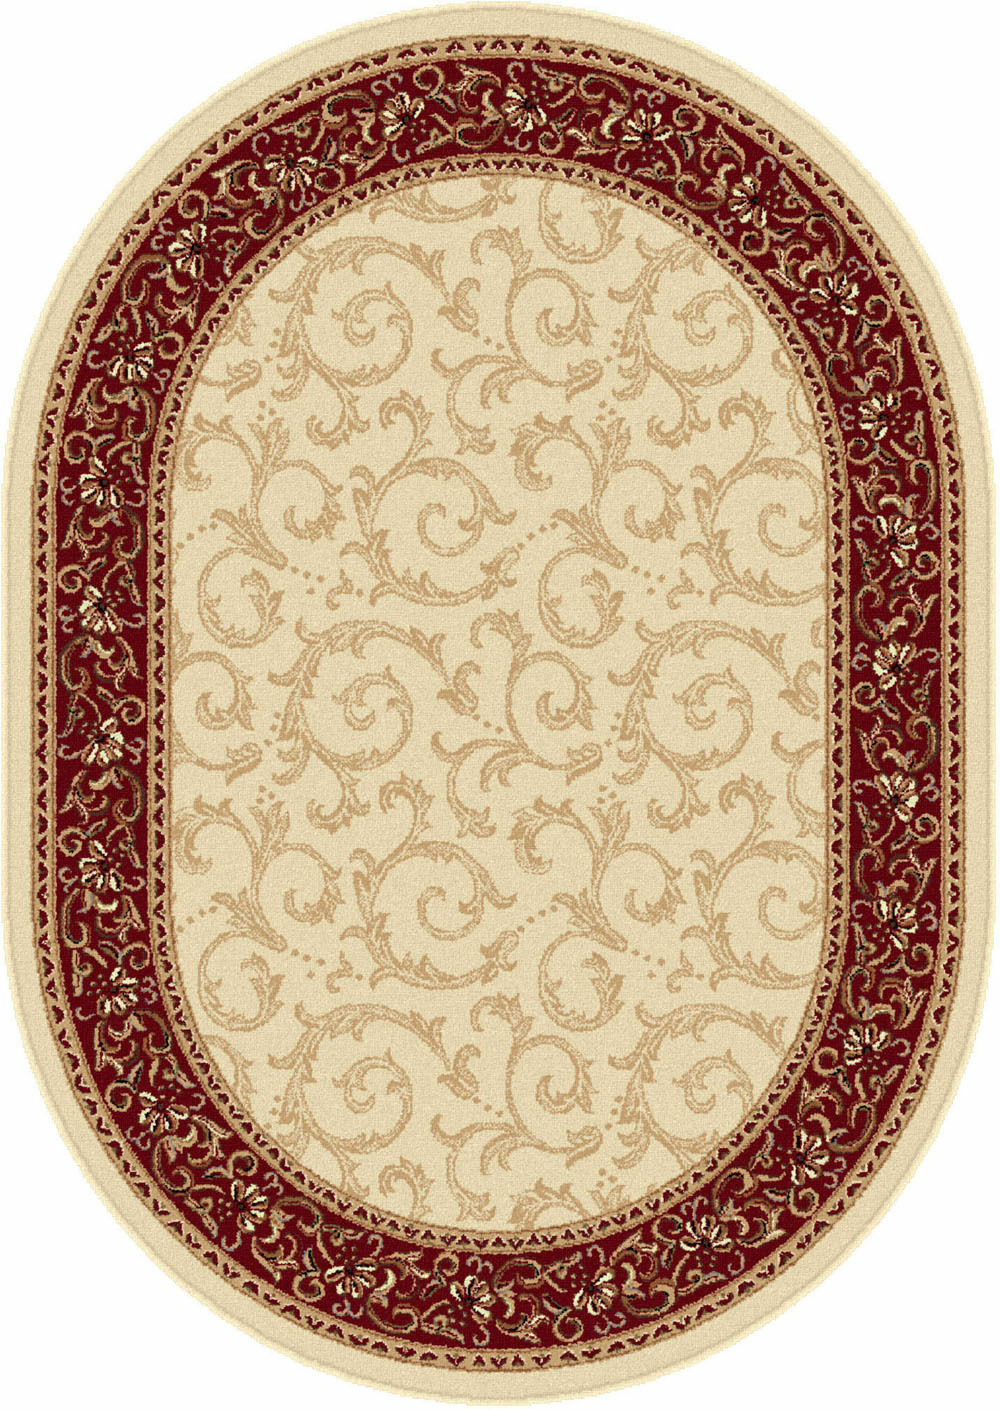 Image of: Oval Area Rugs For Sale Ebay